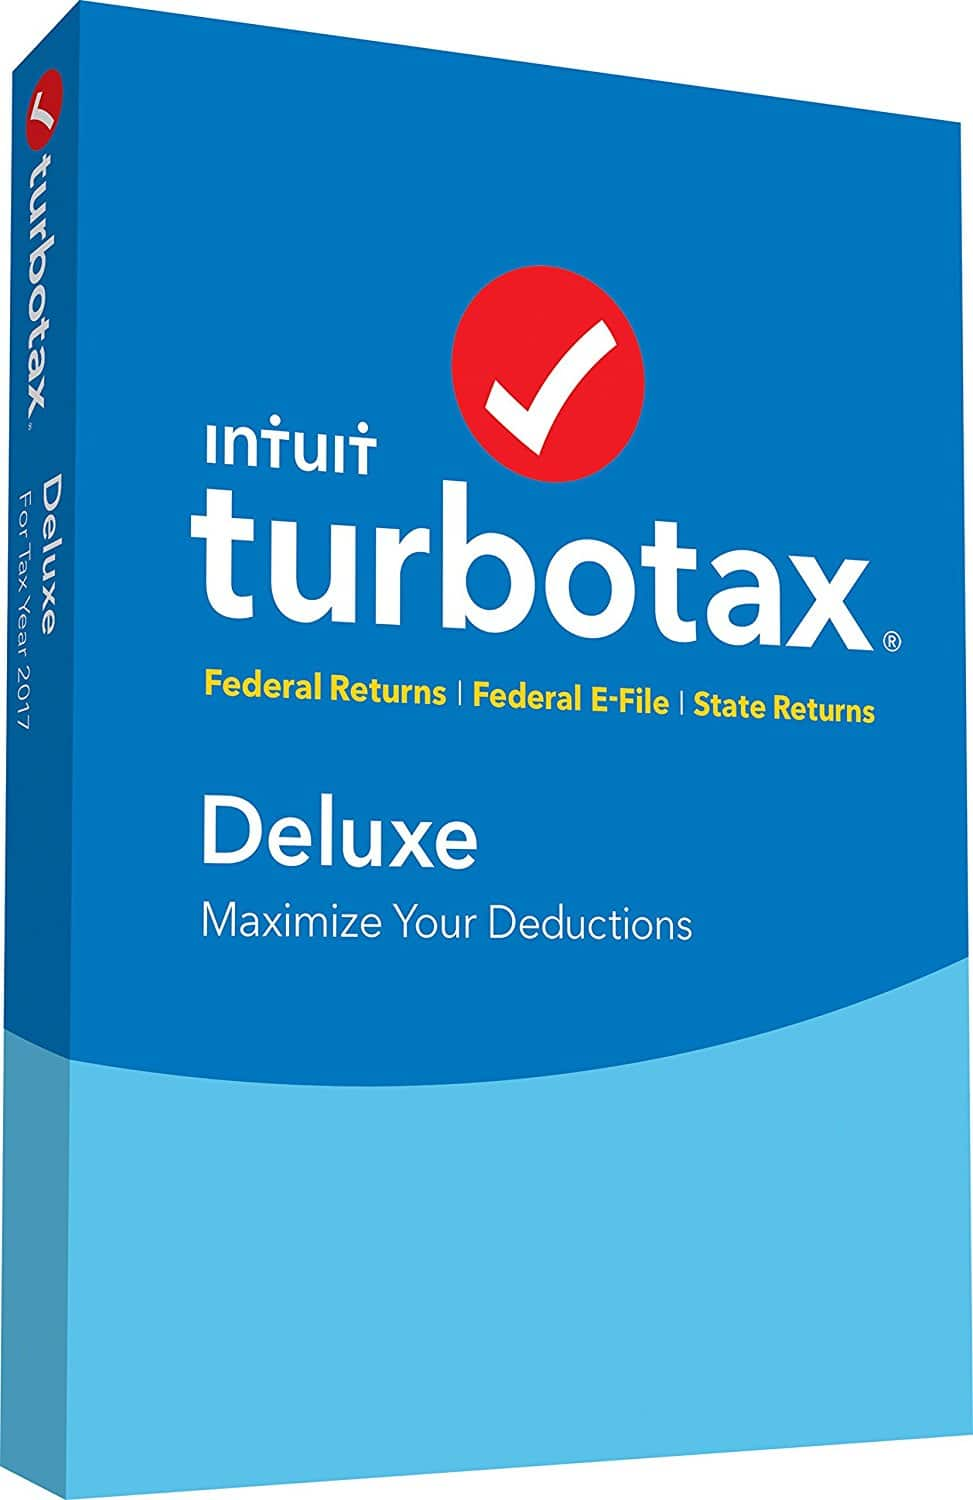 Turbotax Home And Business 2020 Costco.Turbotax Deluxe 2017 Federal State Fed E File Pc Mac